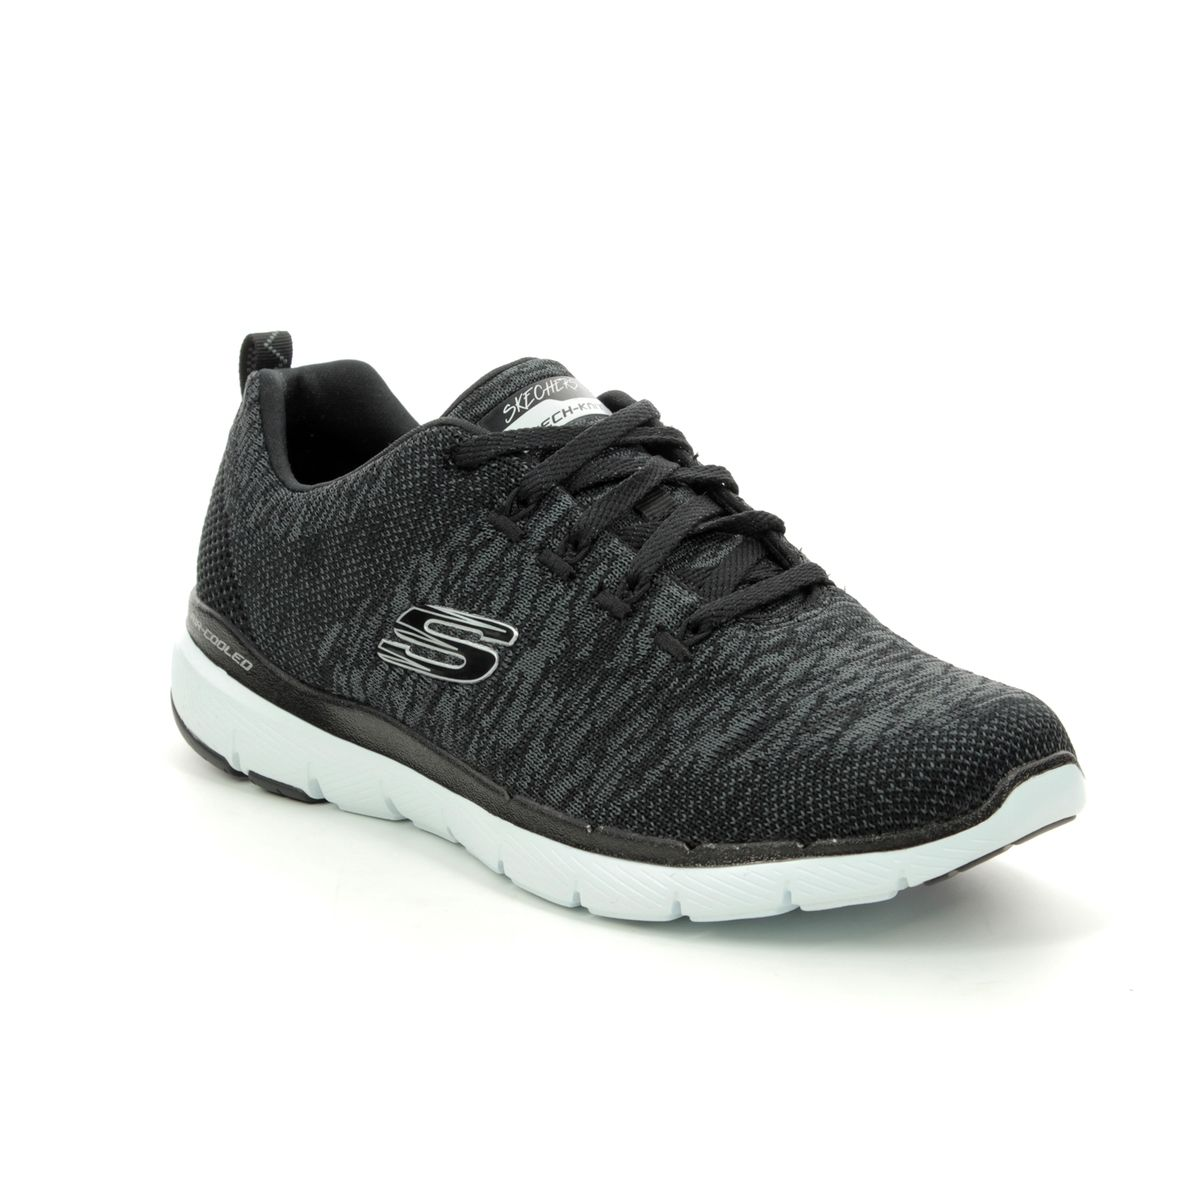 d115c78a4aaa Skechers Flex Appeal 3 13062 BKW Black-white trainers